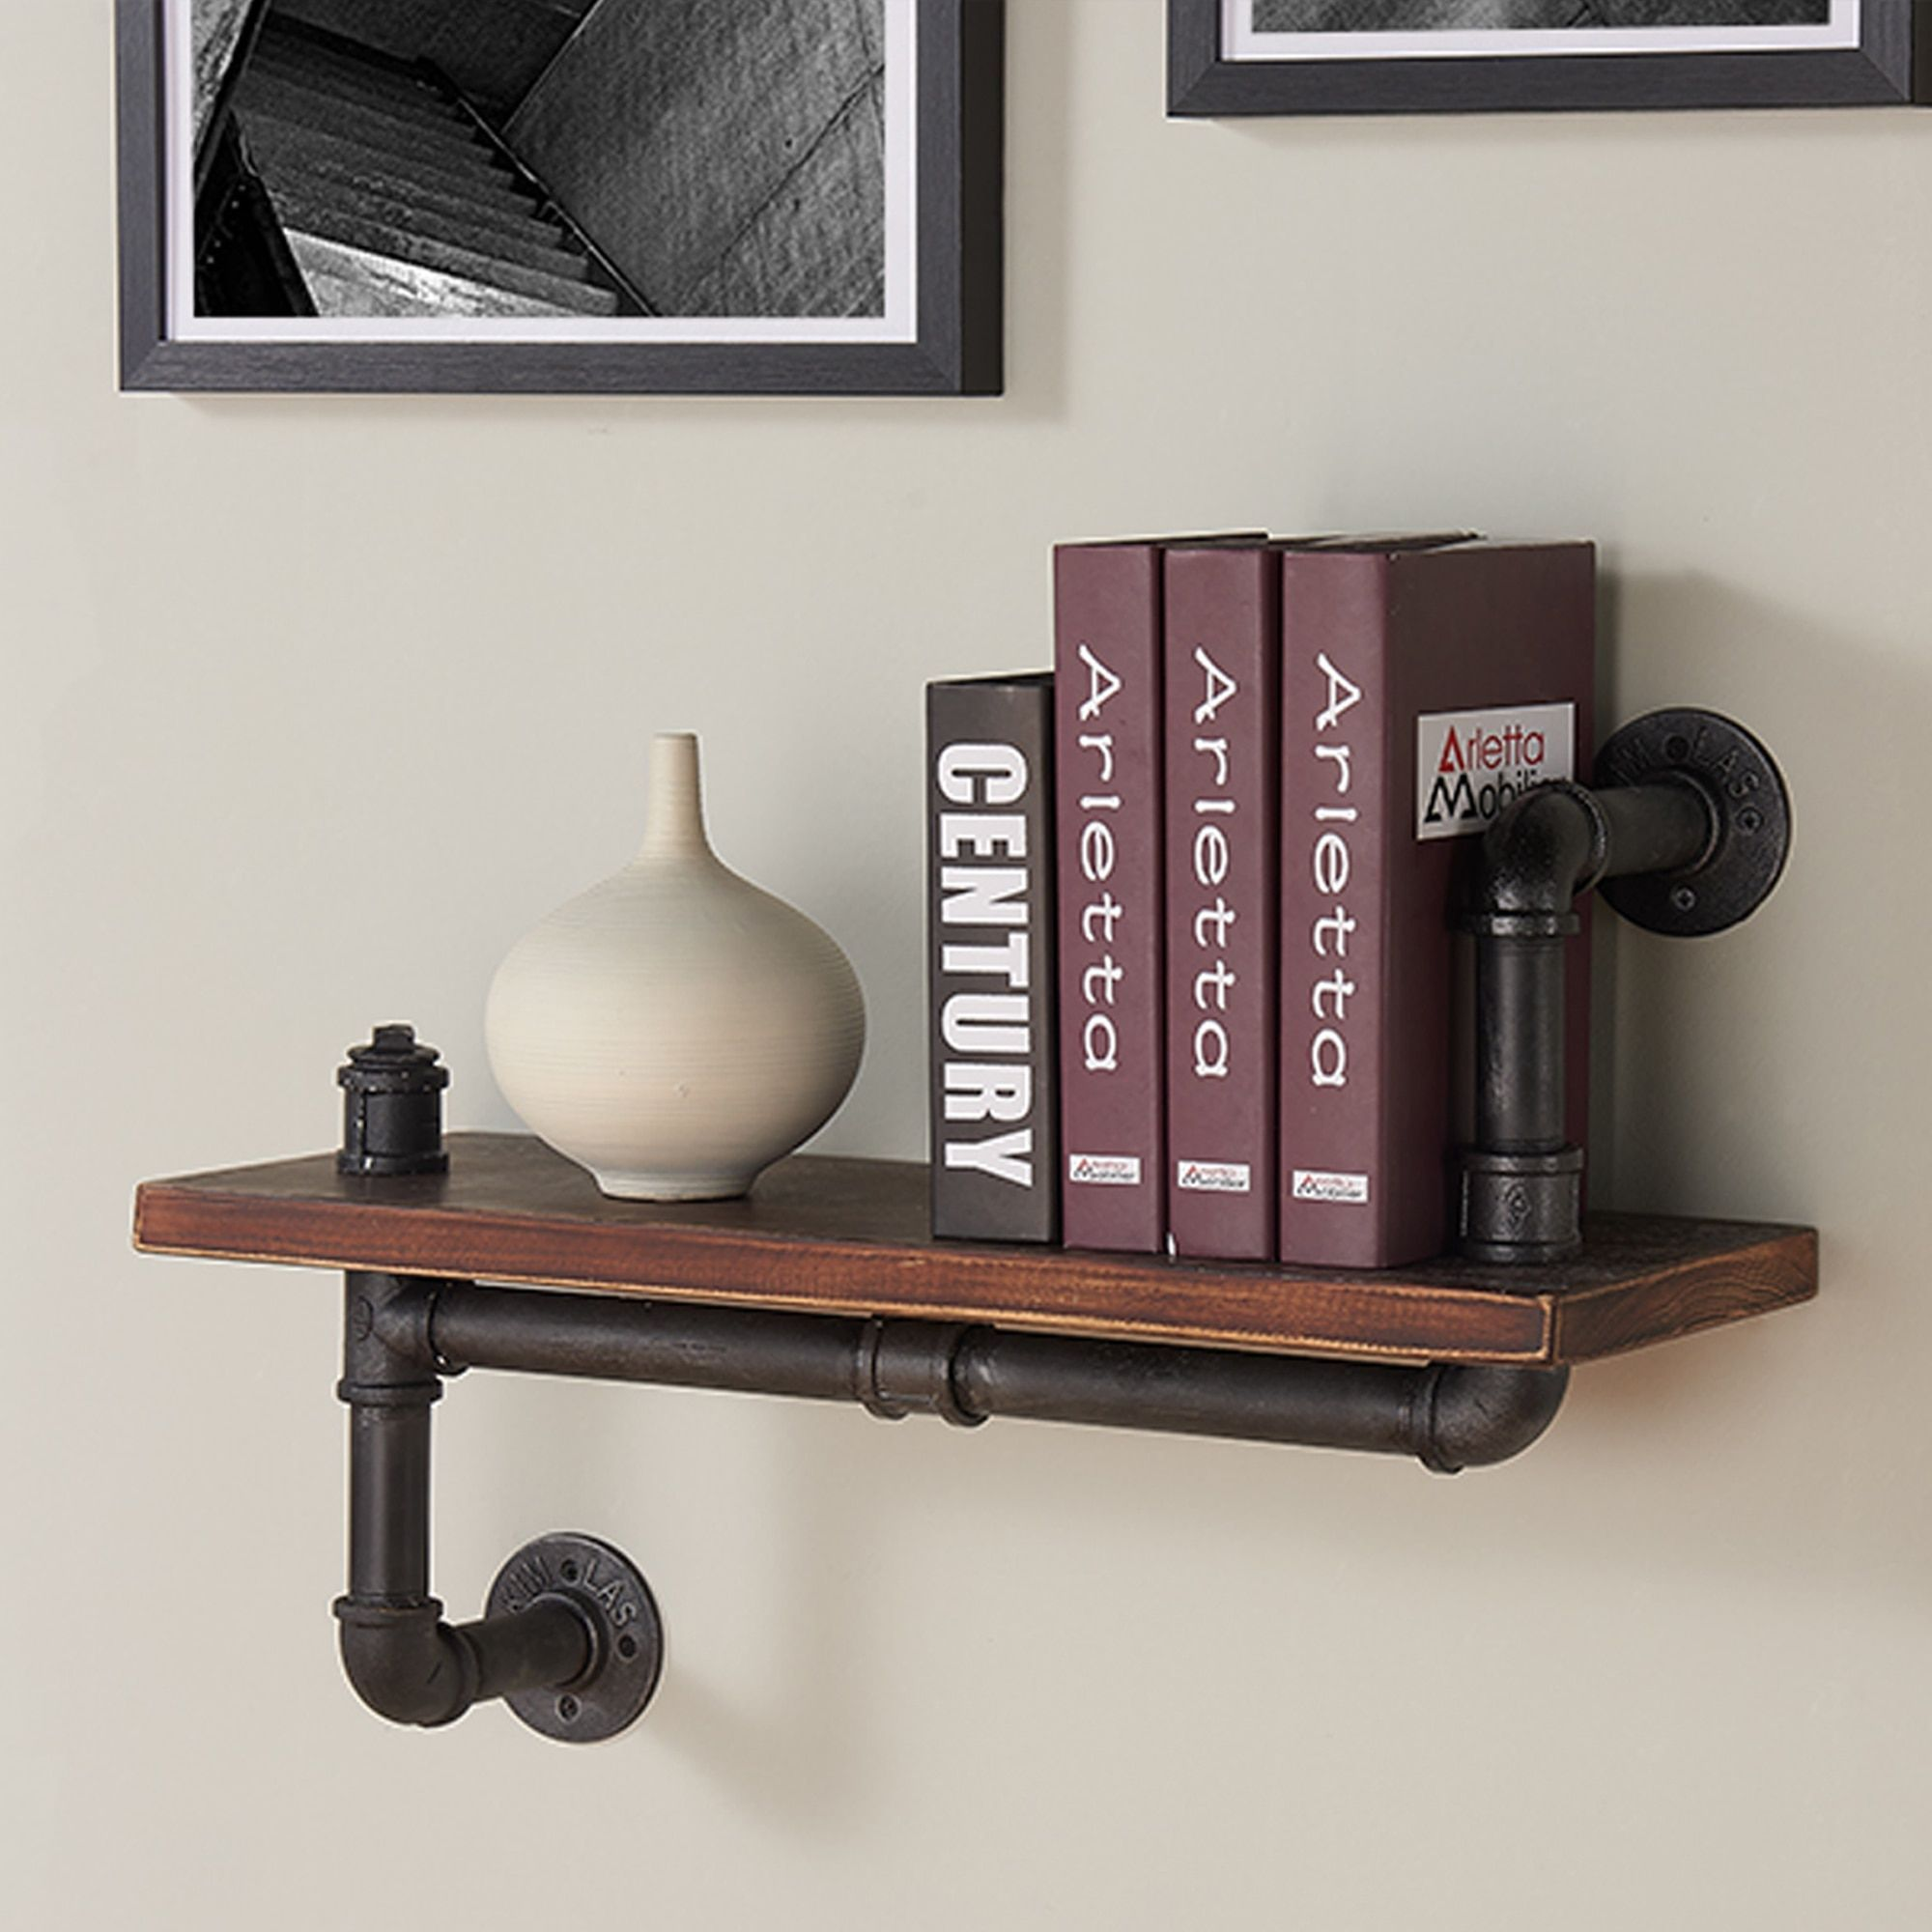 Wood Floating Shelves Set Of 2 Rustic Floating Shelves 24 Inch Made In Europe Wide Wood In 2020 Wood Floating Shelves Rustic Floating Shelves Wooden Wall Shelves